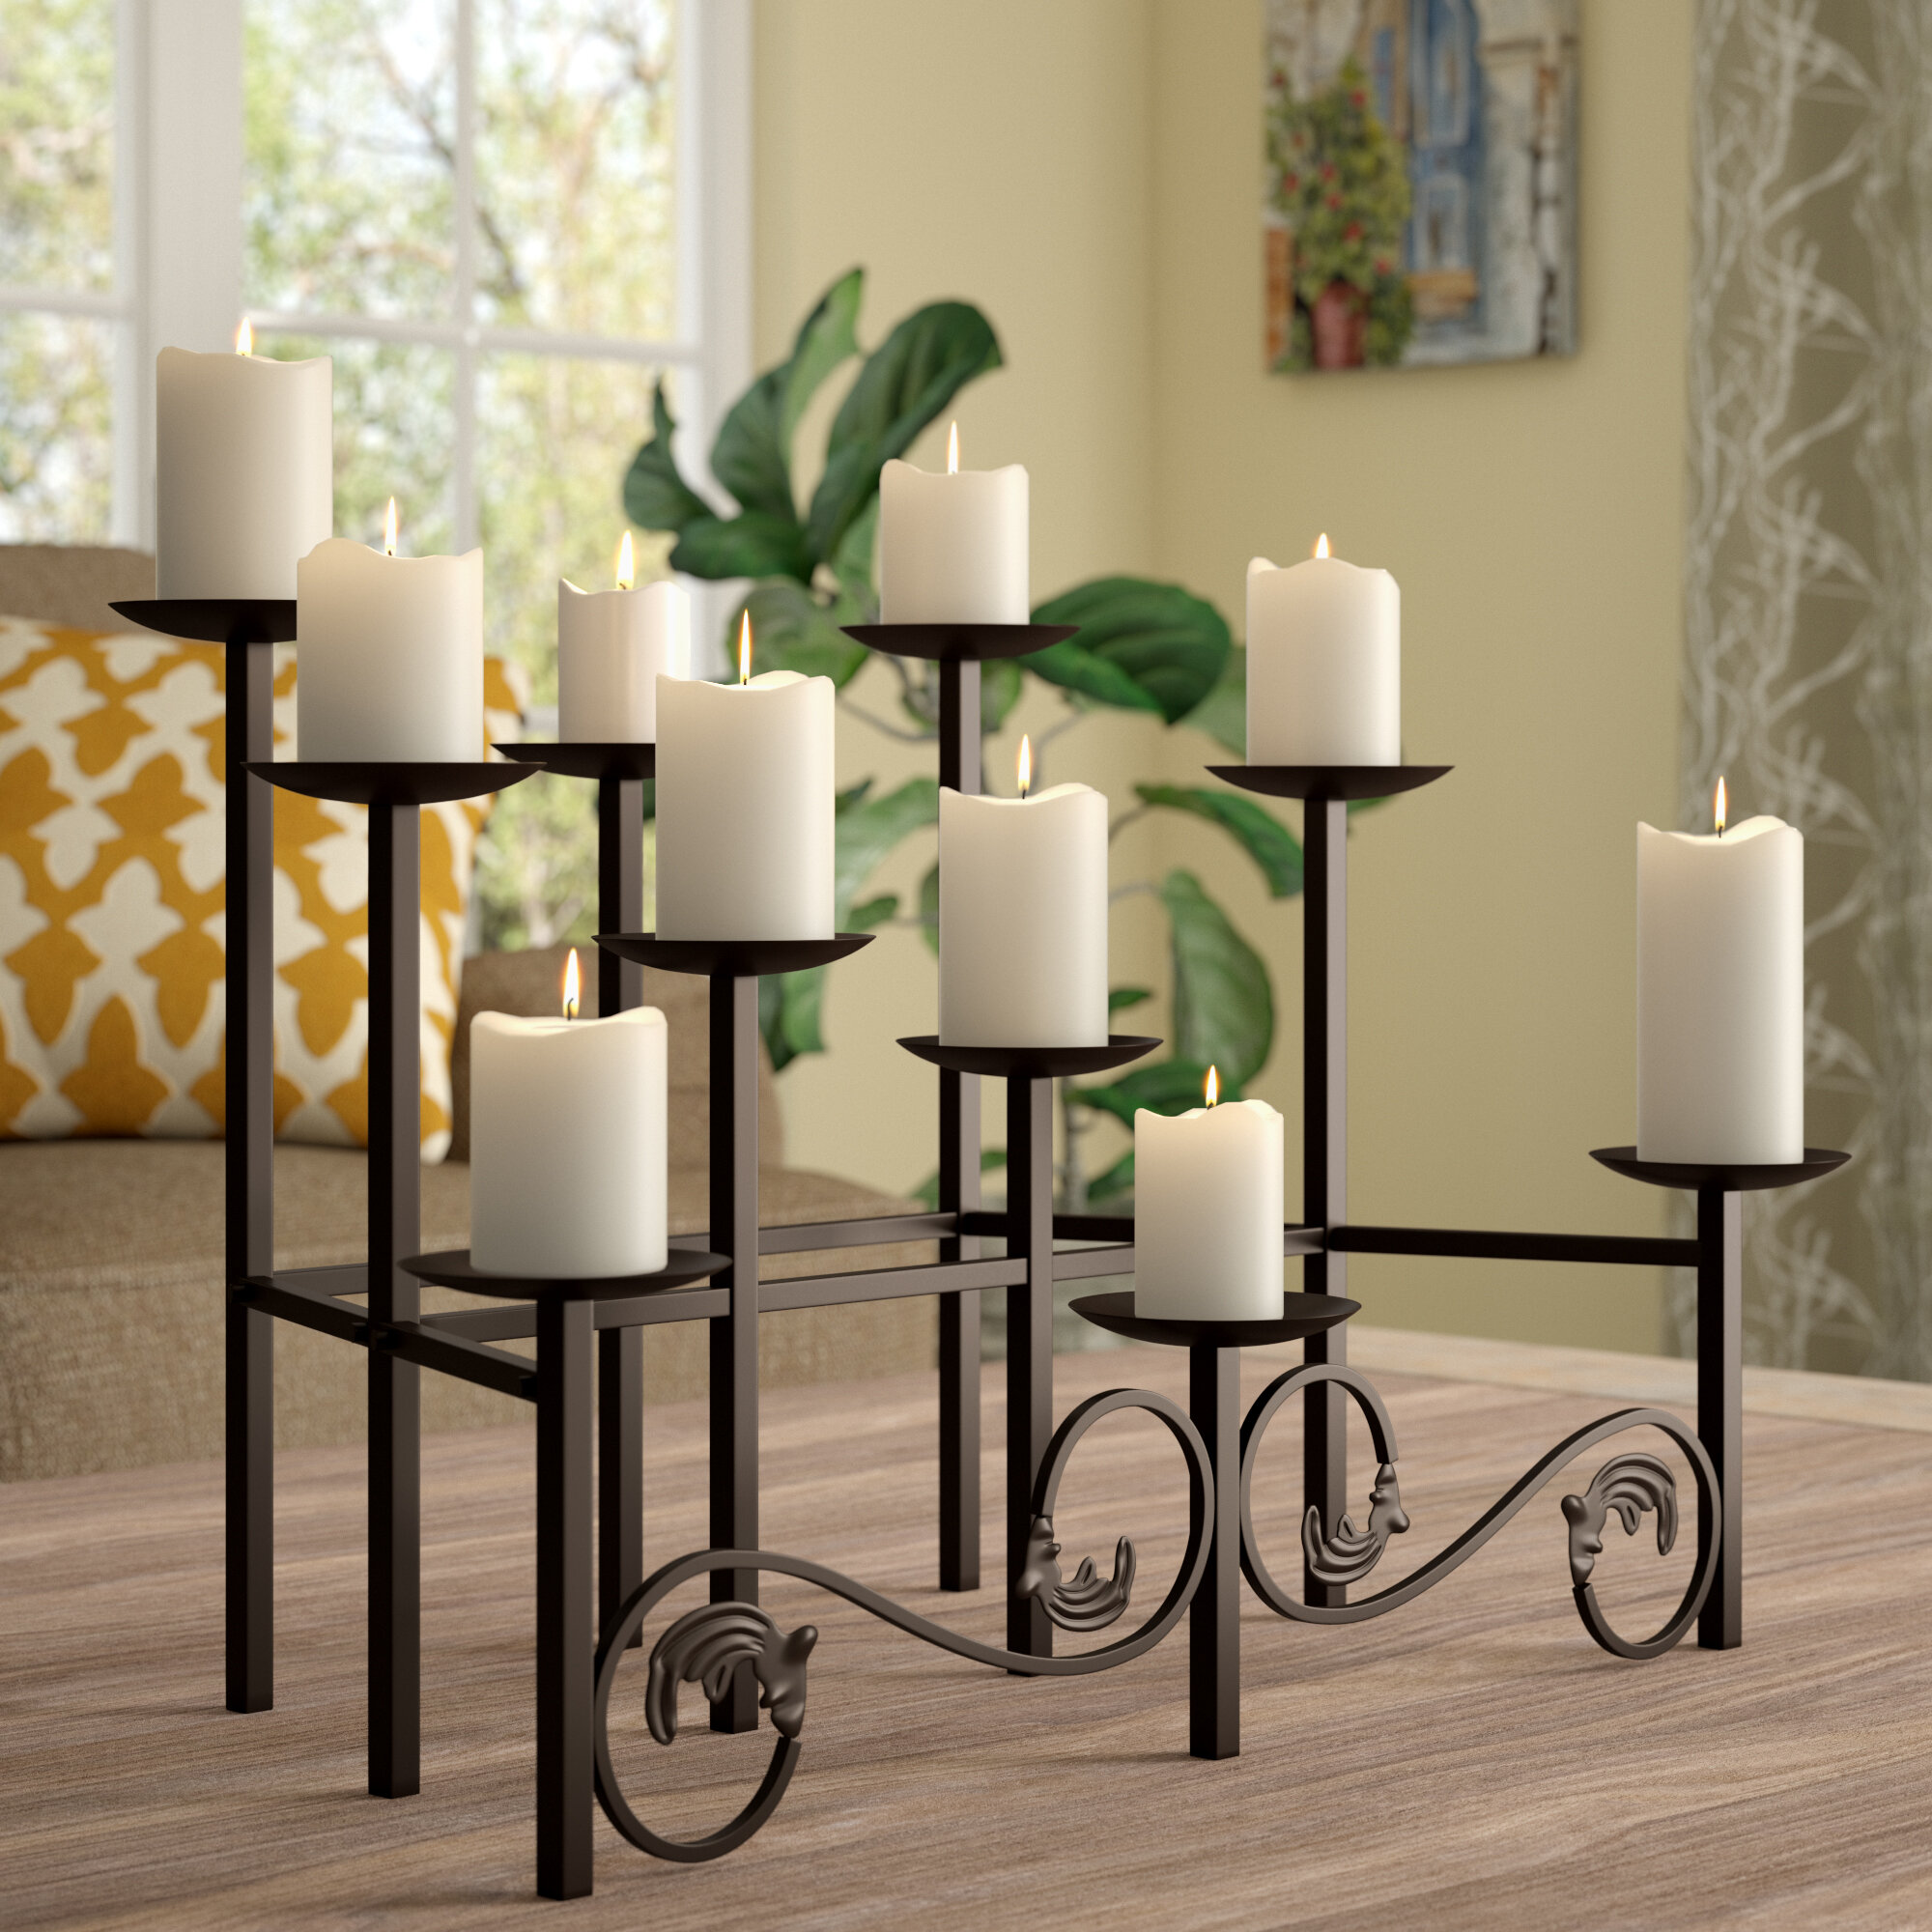 Pleasing Candelabra Fireplace Candle Holders Youll Love In 2019 Interior Design Ideas Gentotryabchikinfo